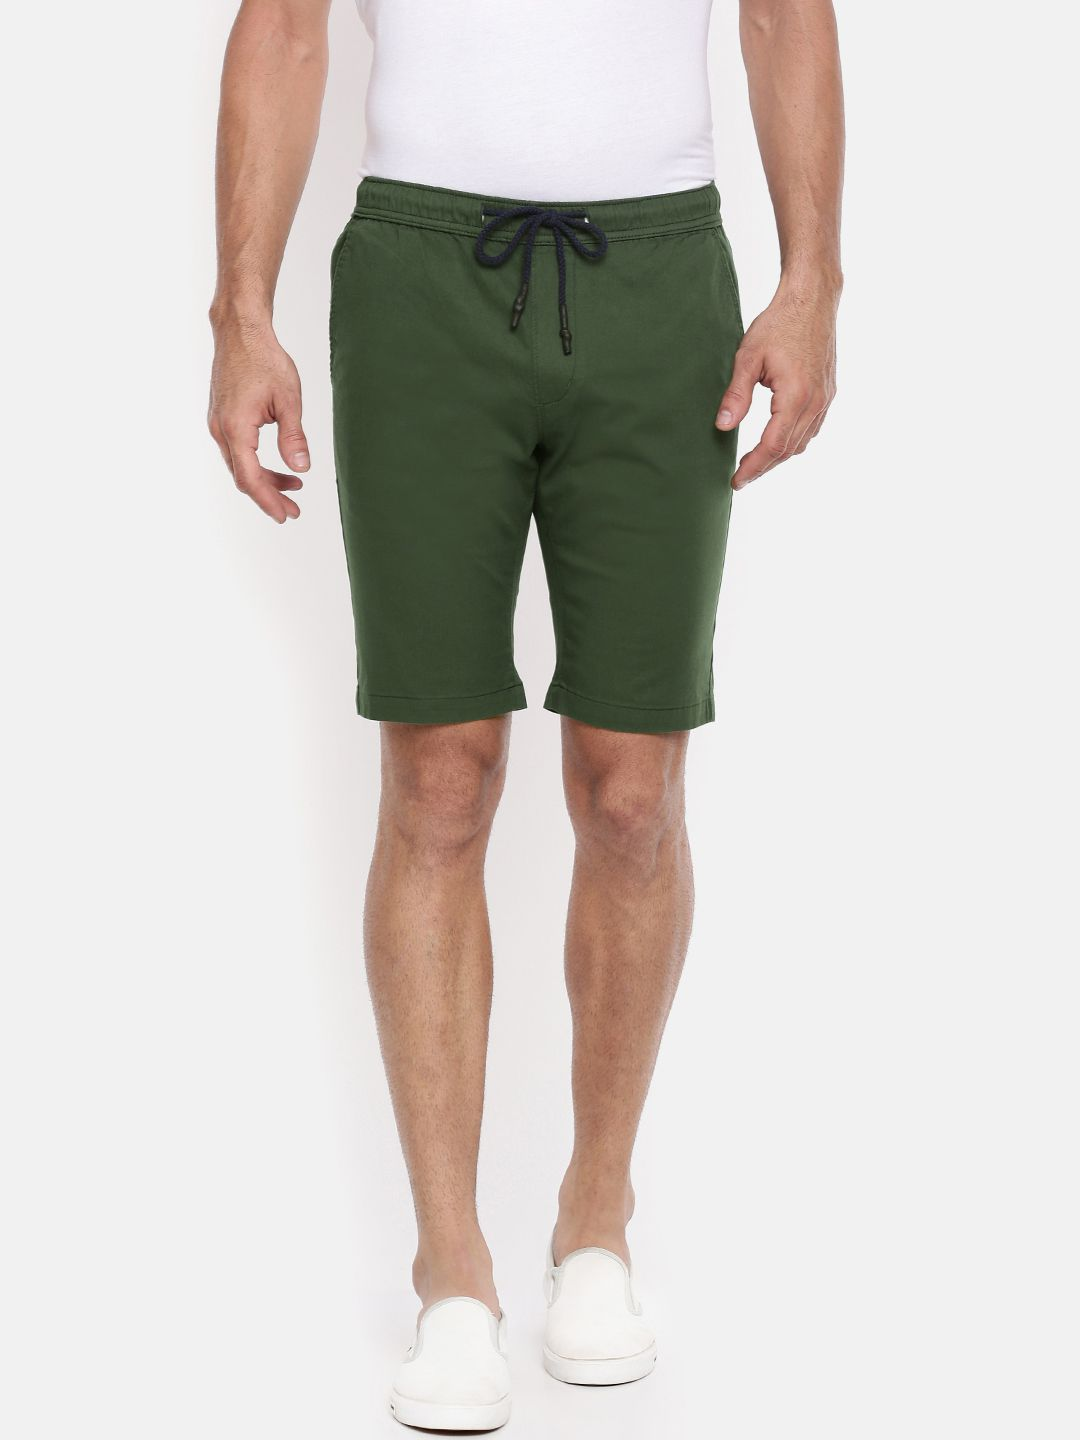 The Indian Garage Co. Green Shorts